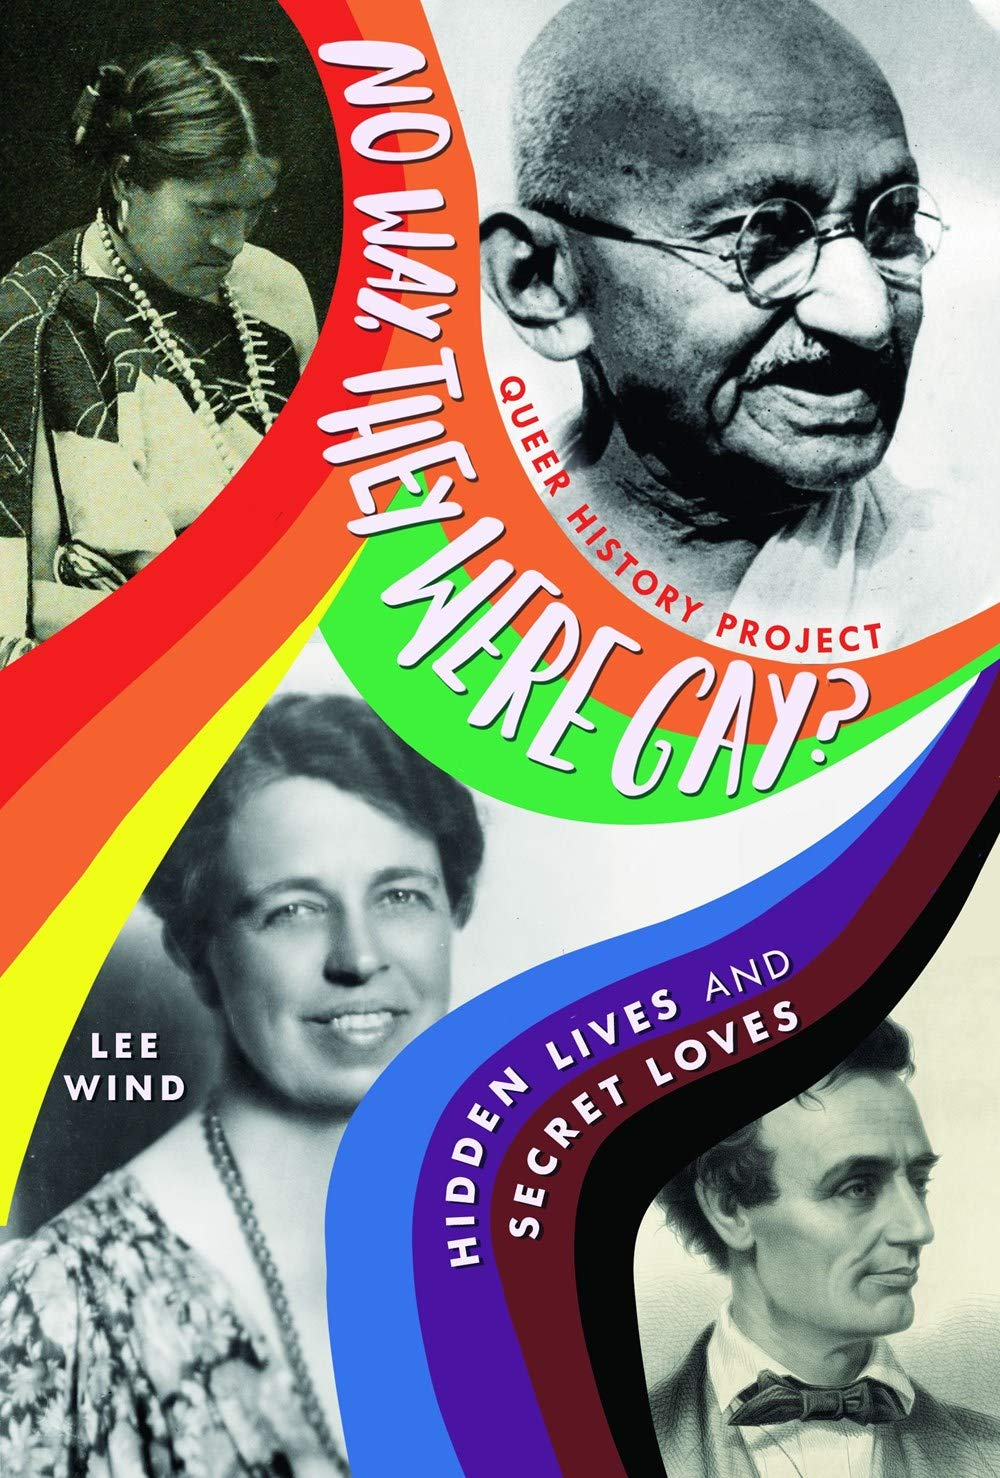 No Way, They Were Gay?: Hidden Lives and Secret Loves (Queer History Project) by Lee Wind